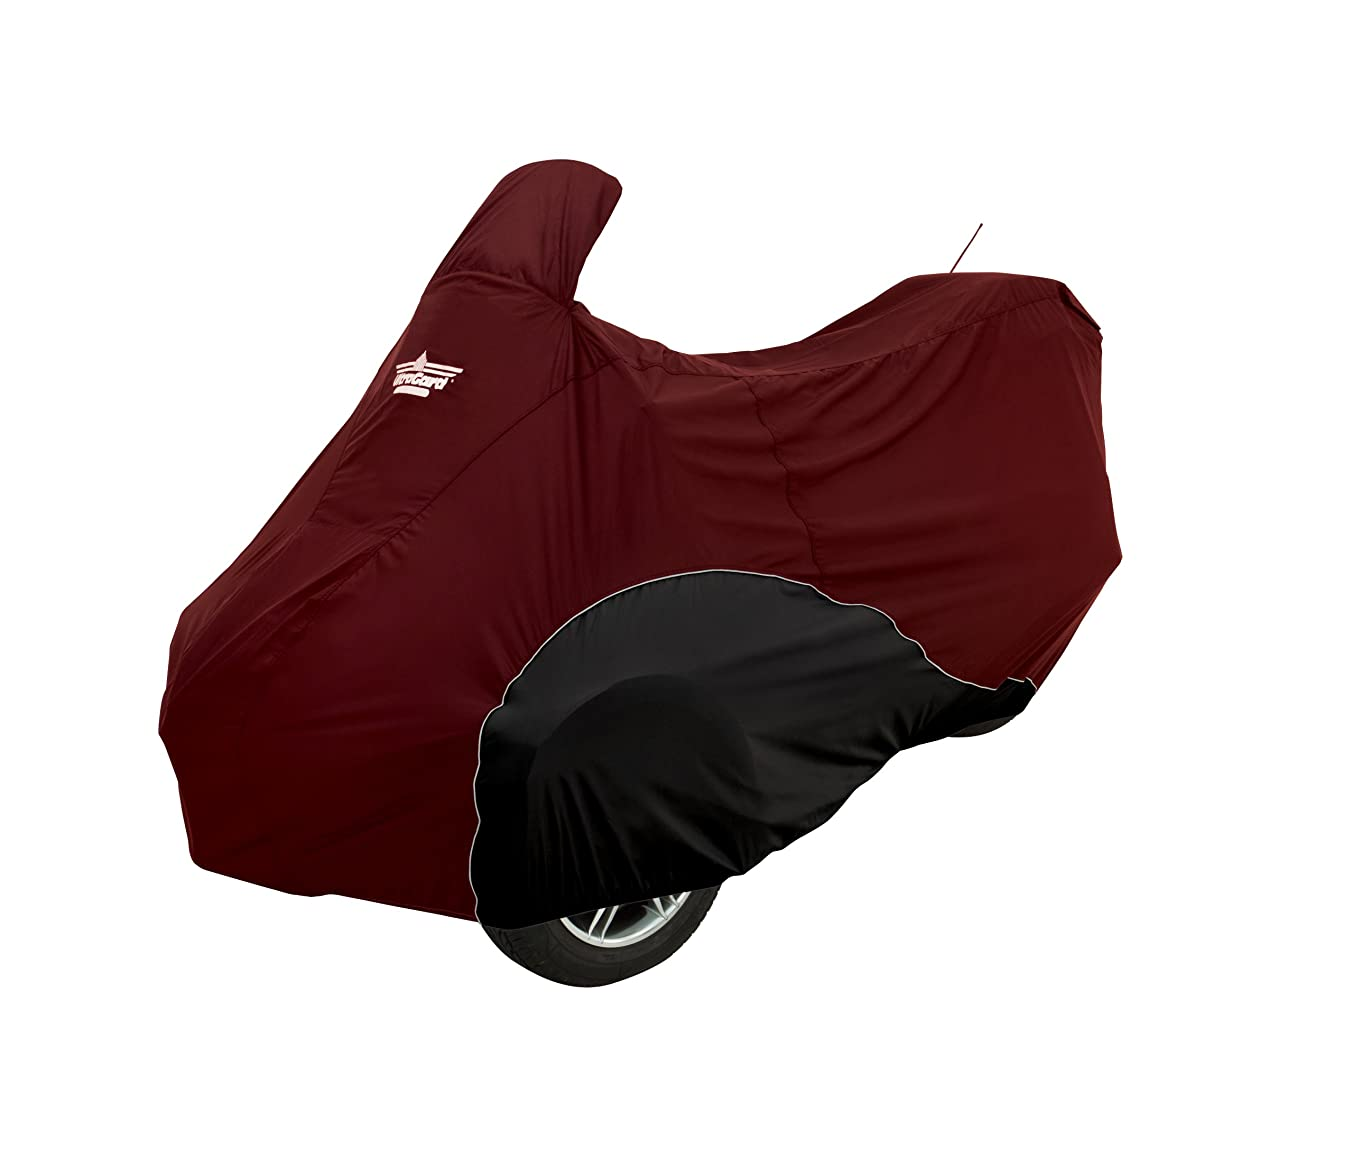 UltraGard 4-475AB Cranberry/Black Can-Am Spyder Cover